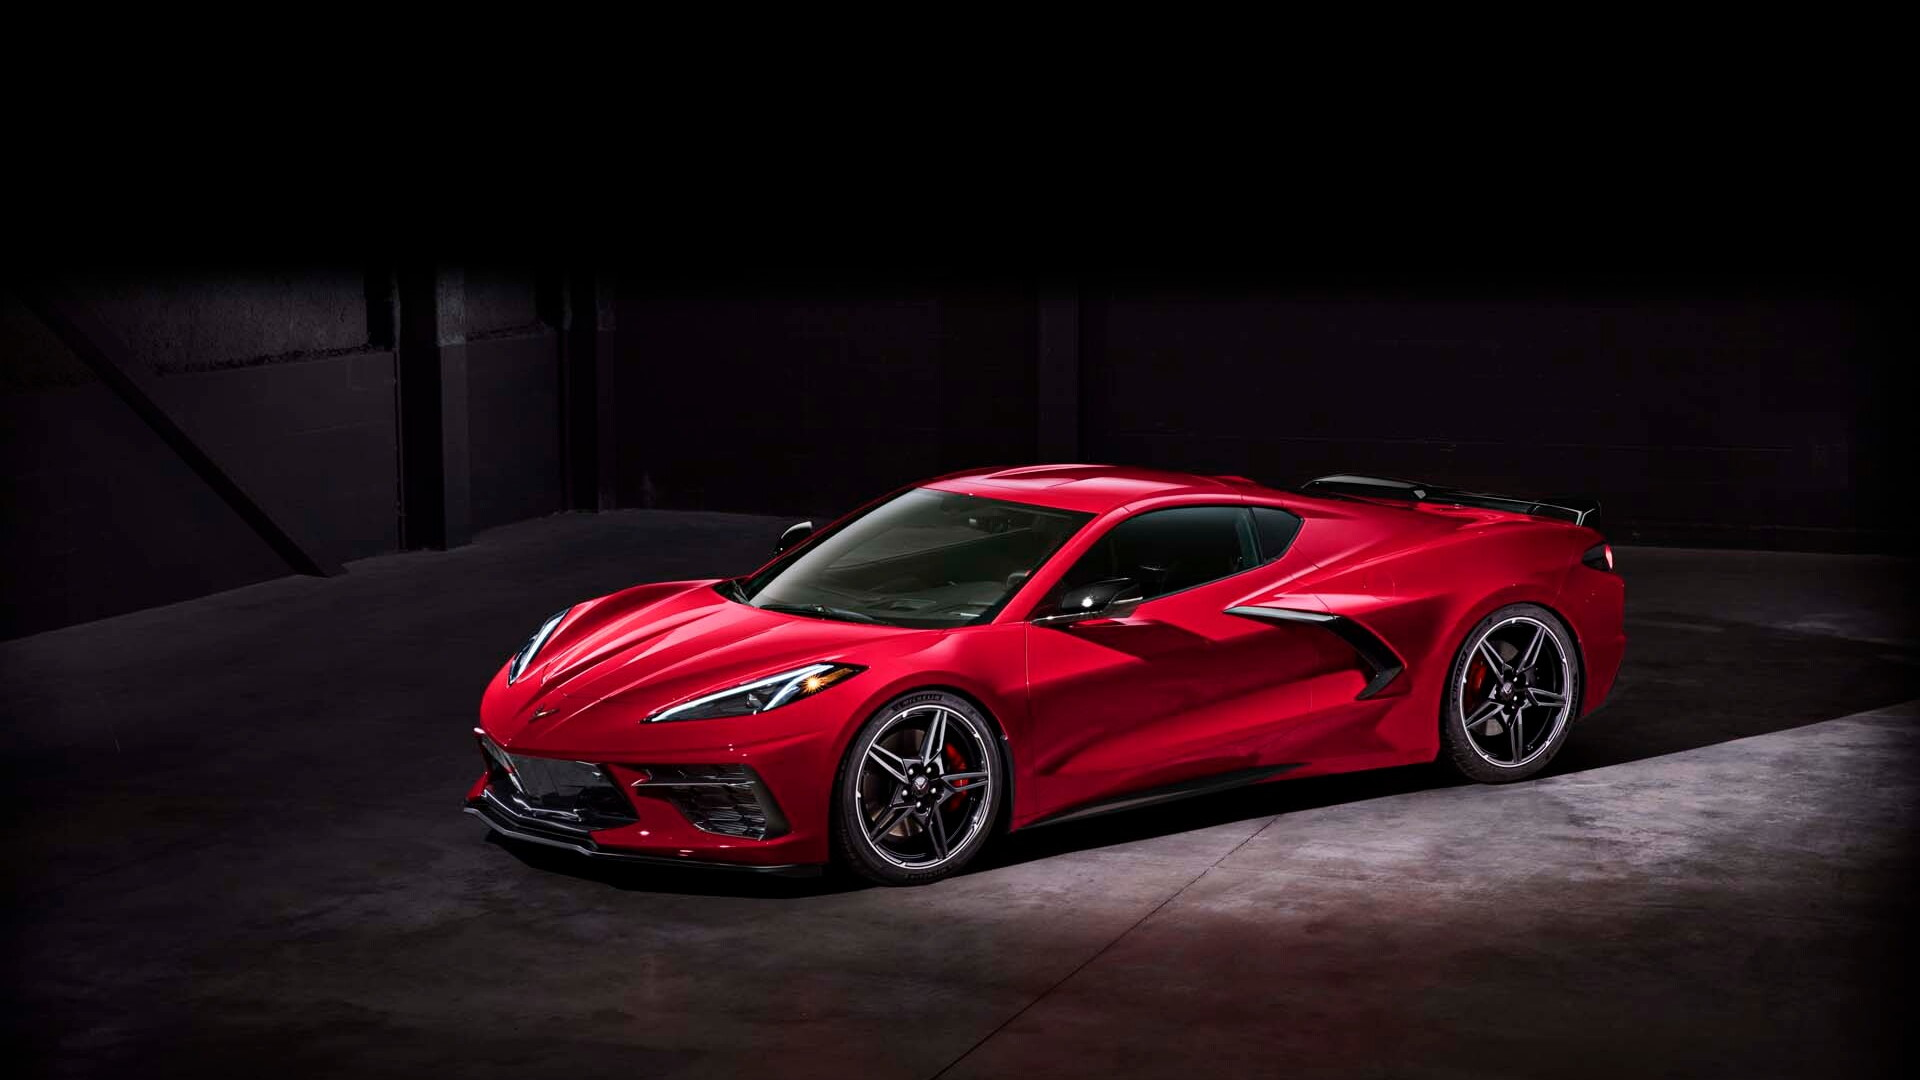 Chevrolet Corvette C8 United States pricing announced, turns out quite the bargain